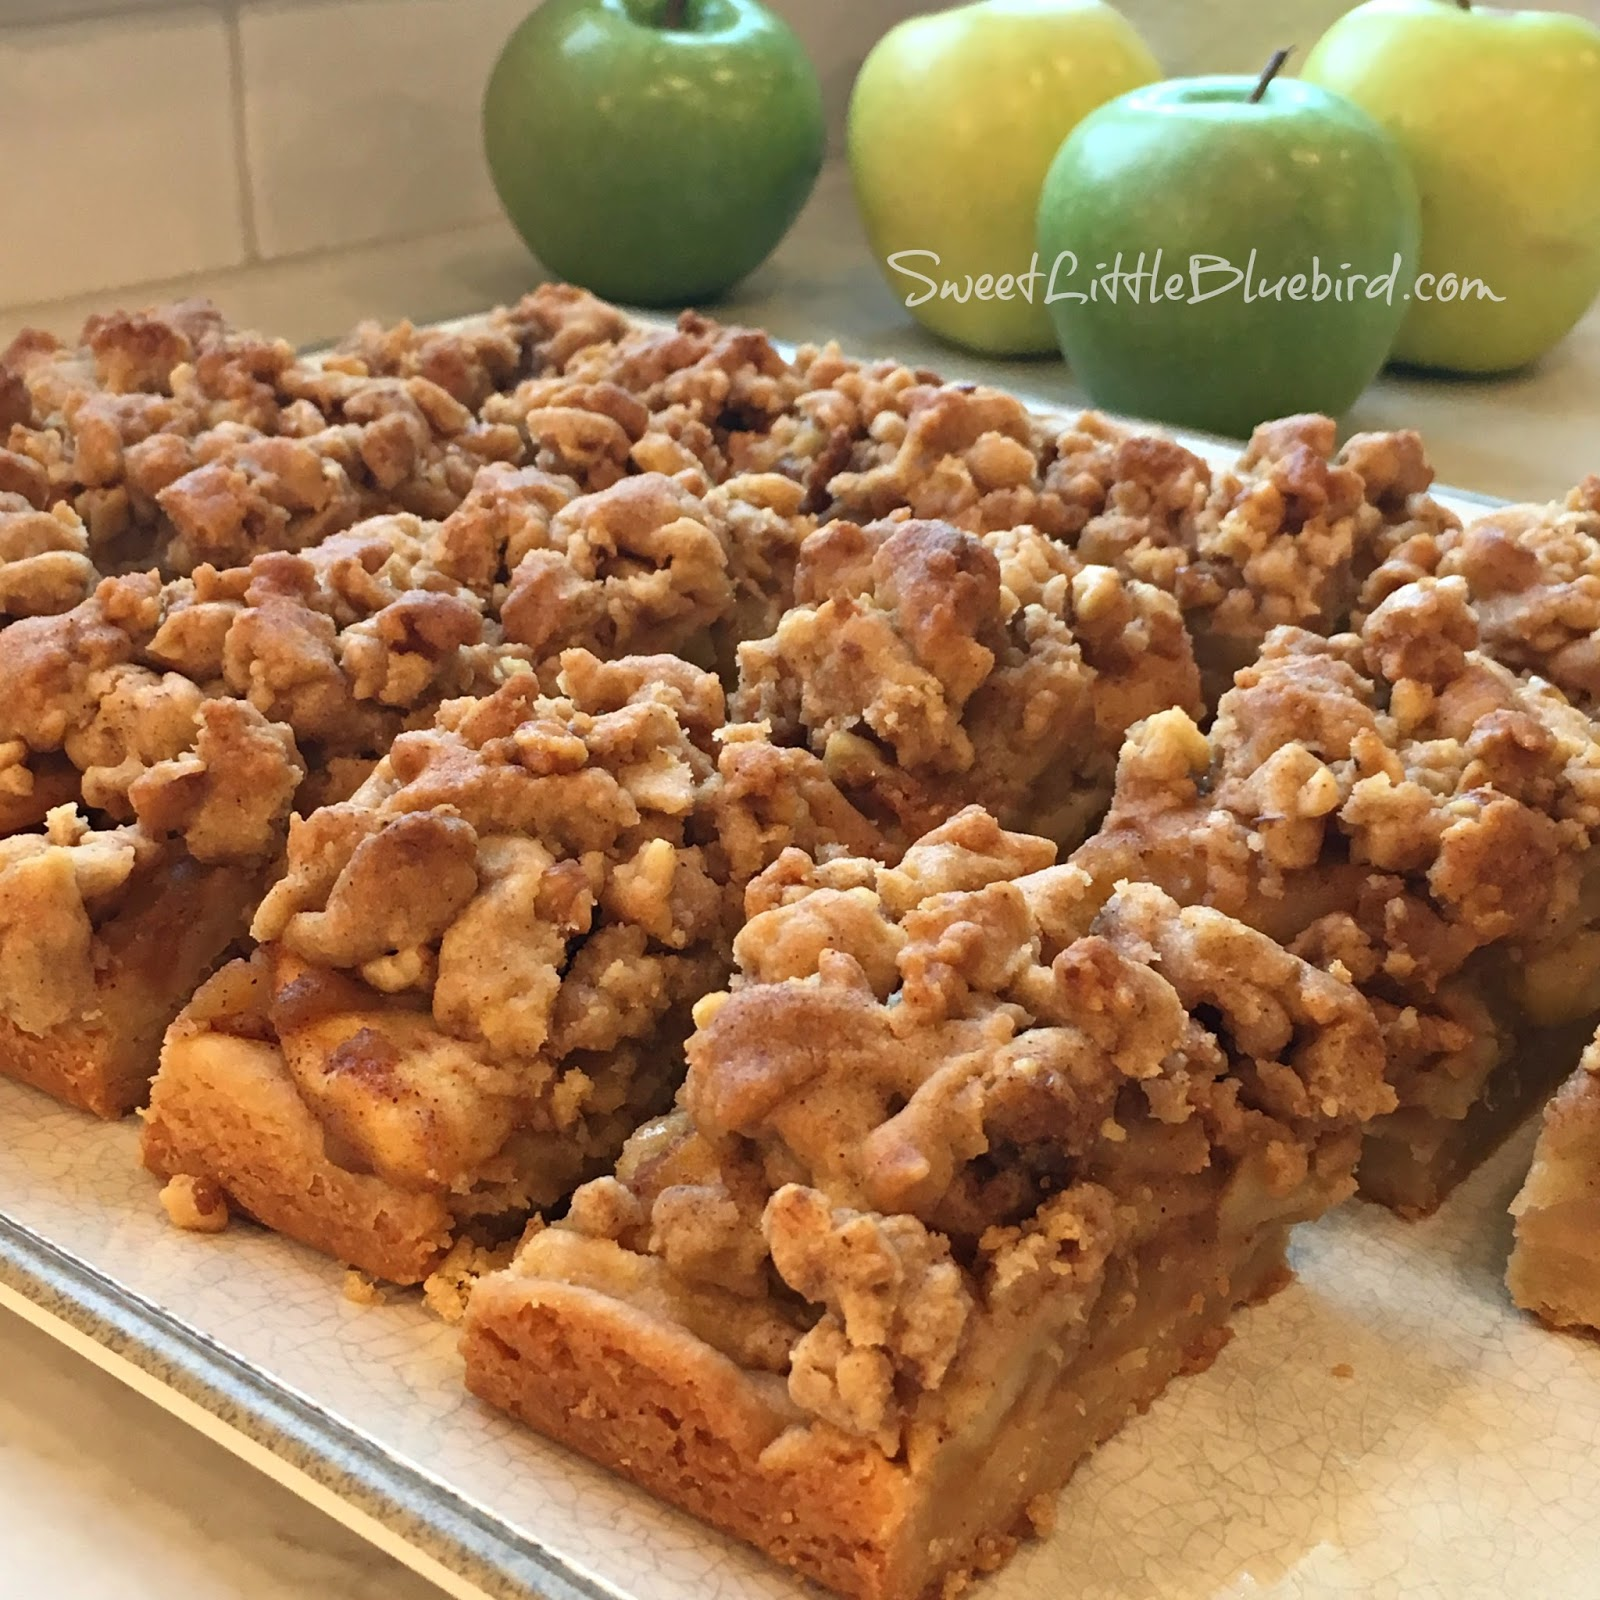 Ina Garten Bars Apple Pie Bars Sweet Little Bluebird